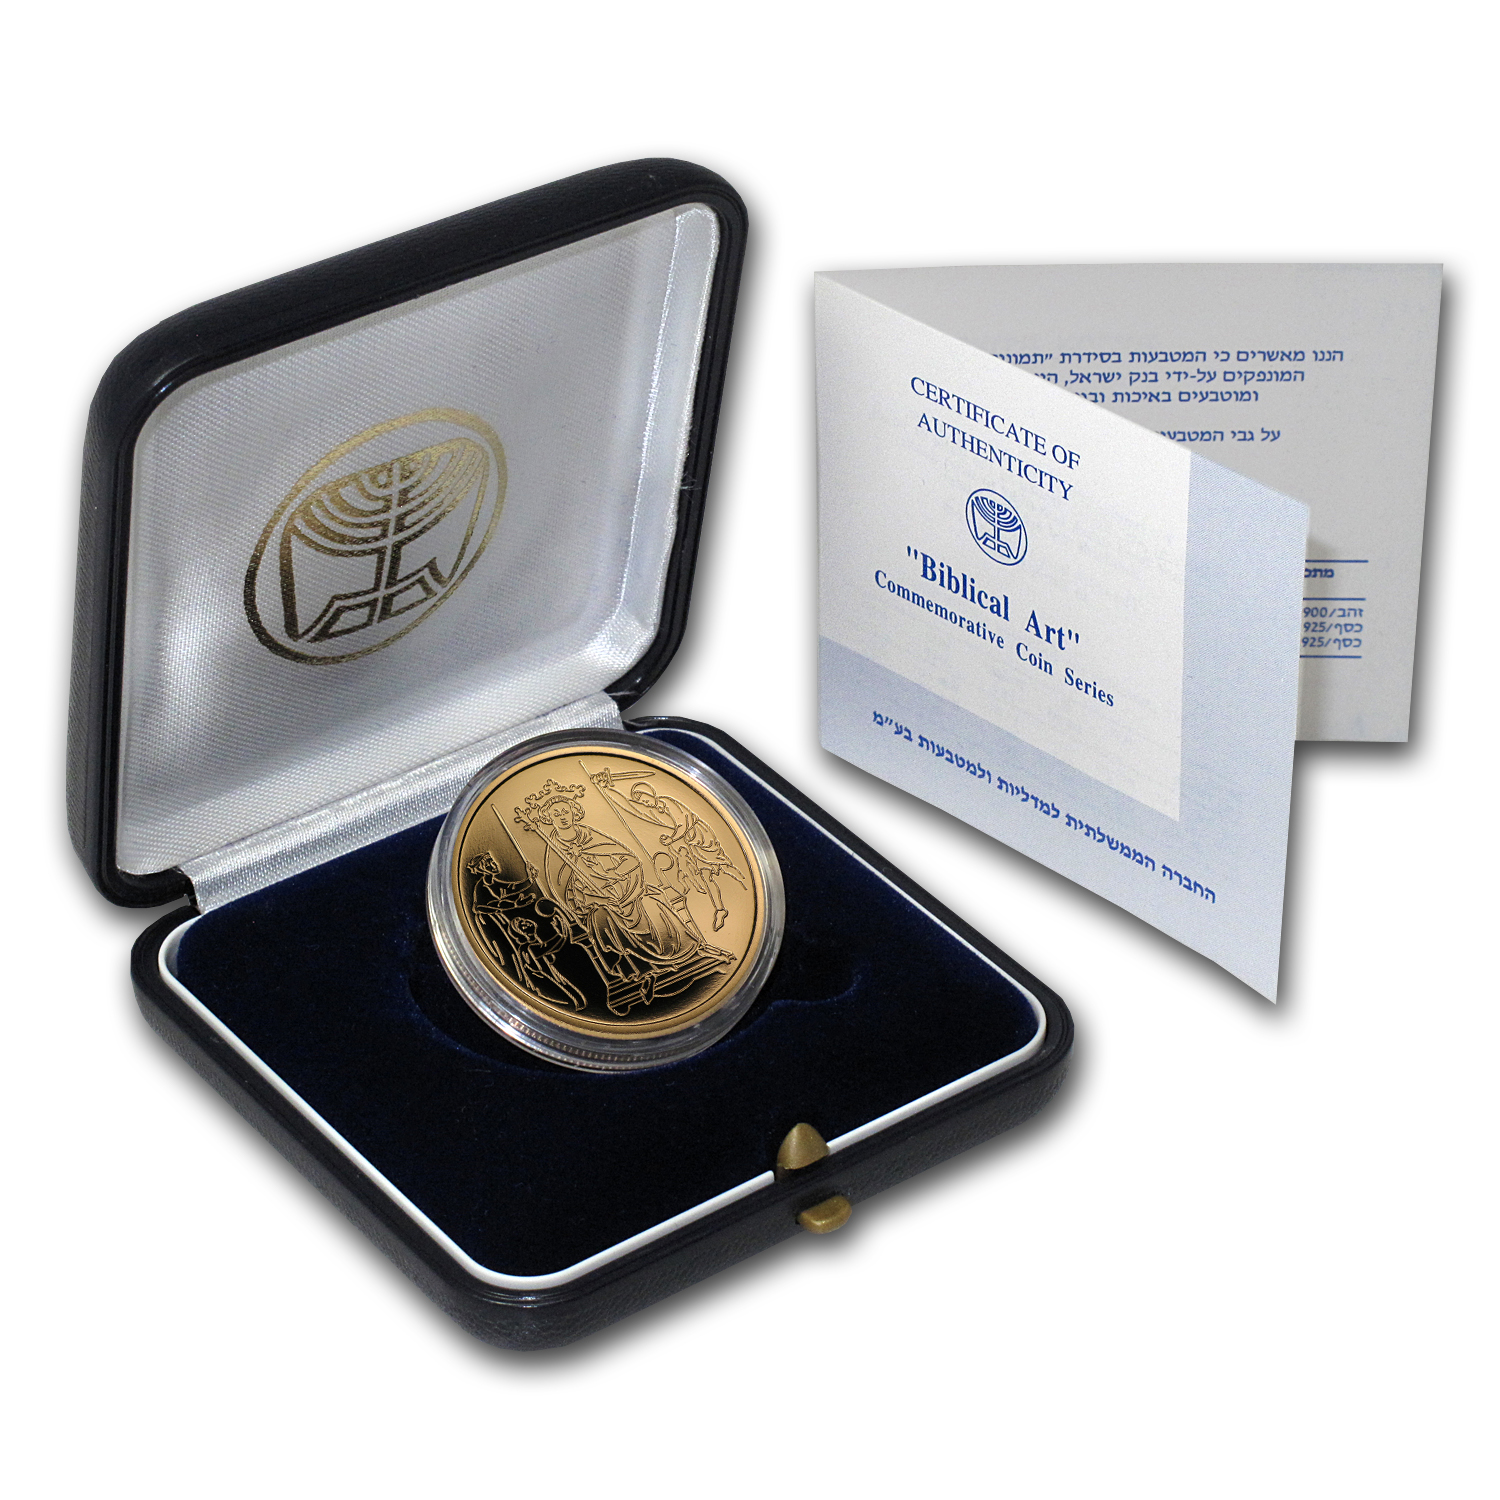 1995 Israel 1/2 oz Proof Gold Solomon's Judgment (w/Box & COA)